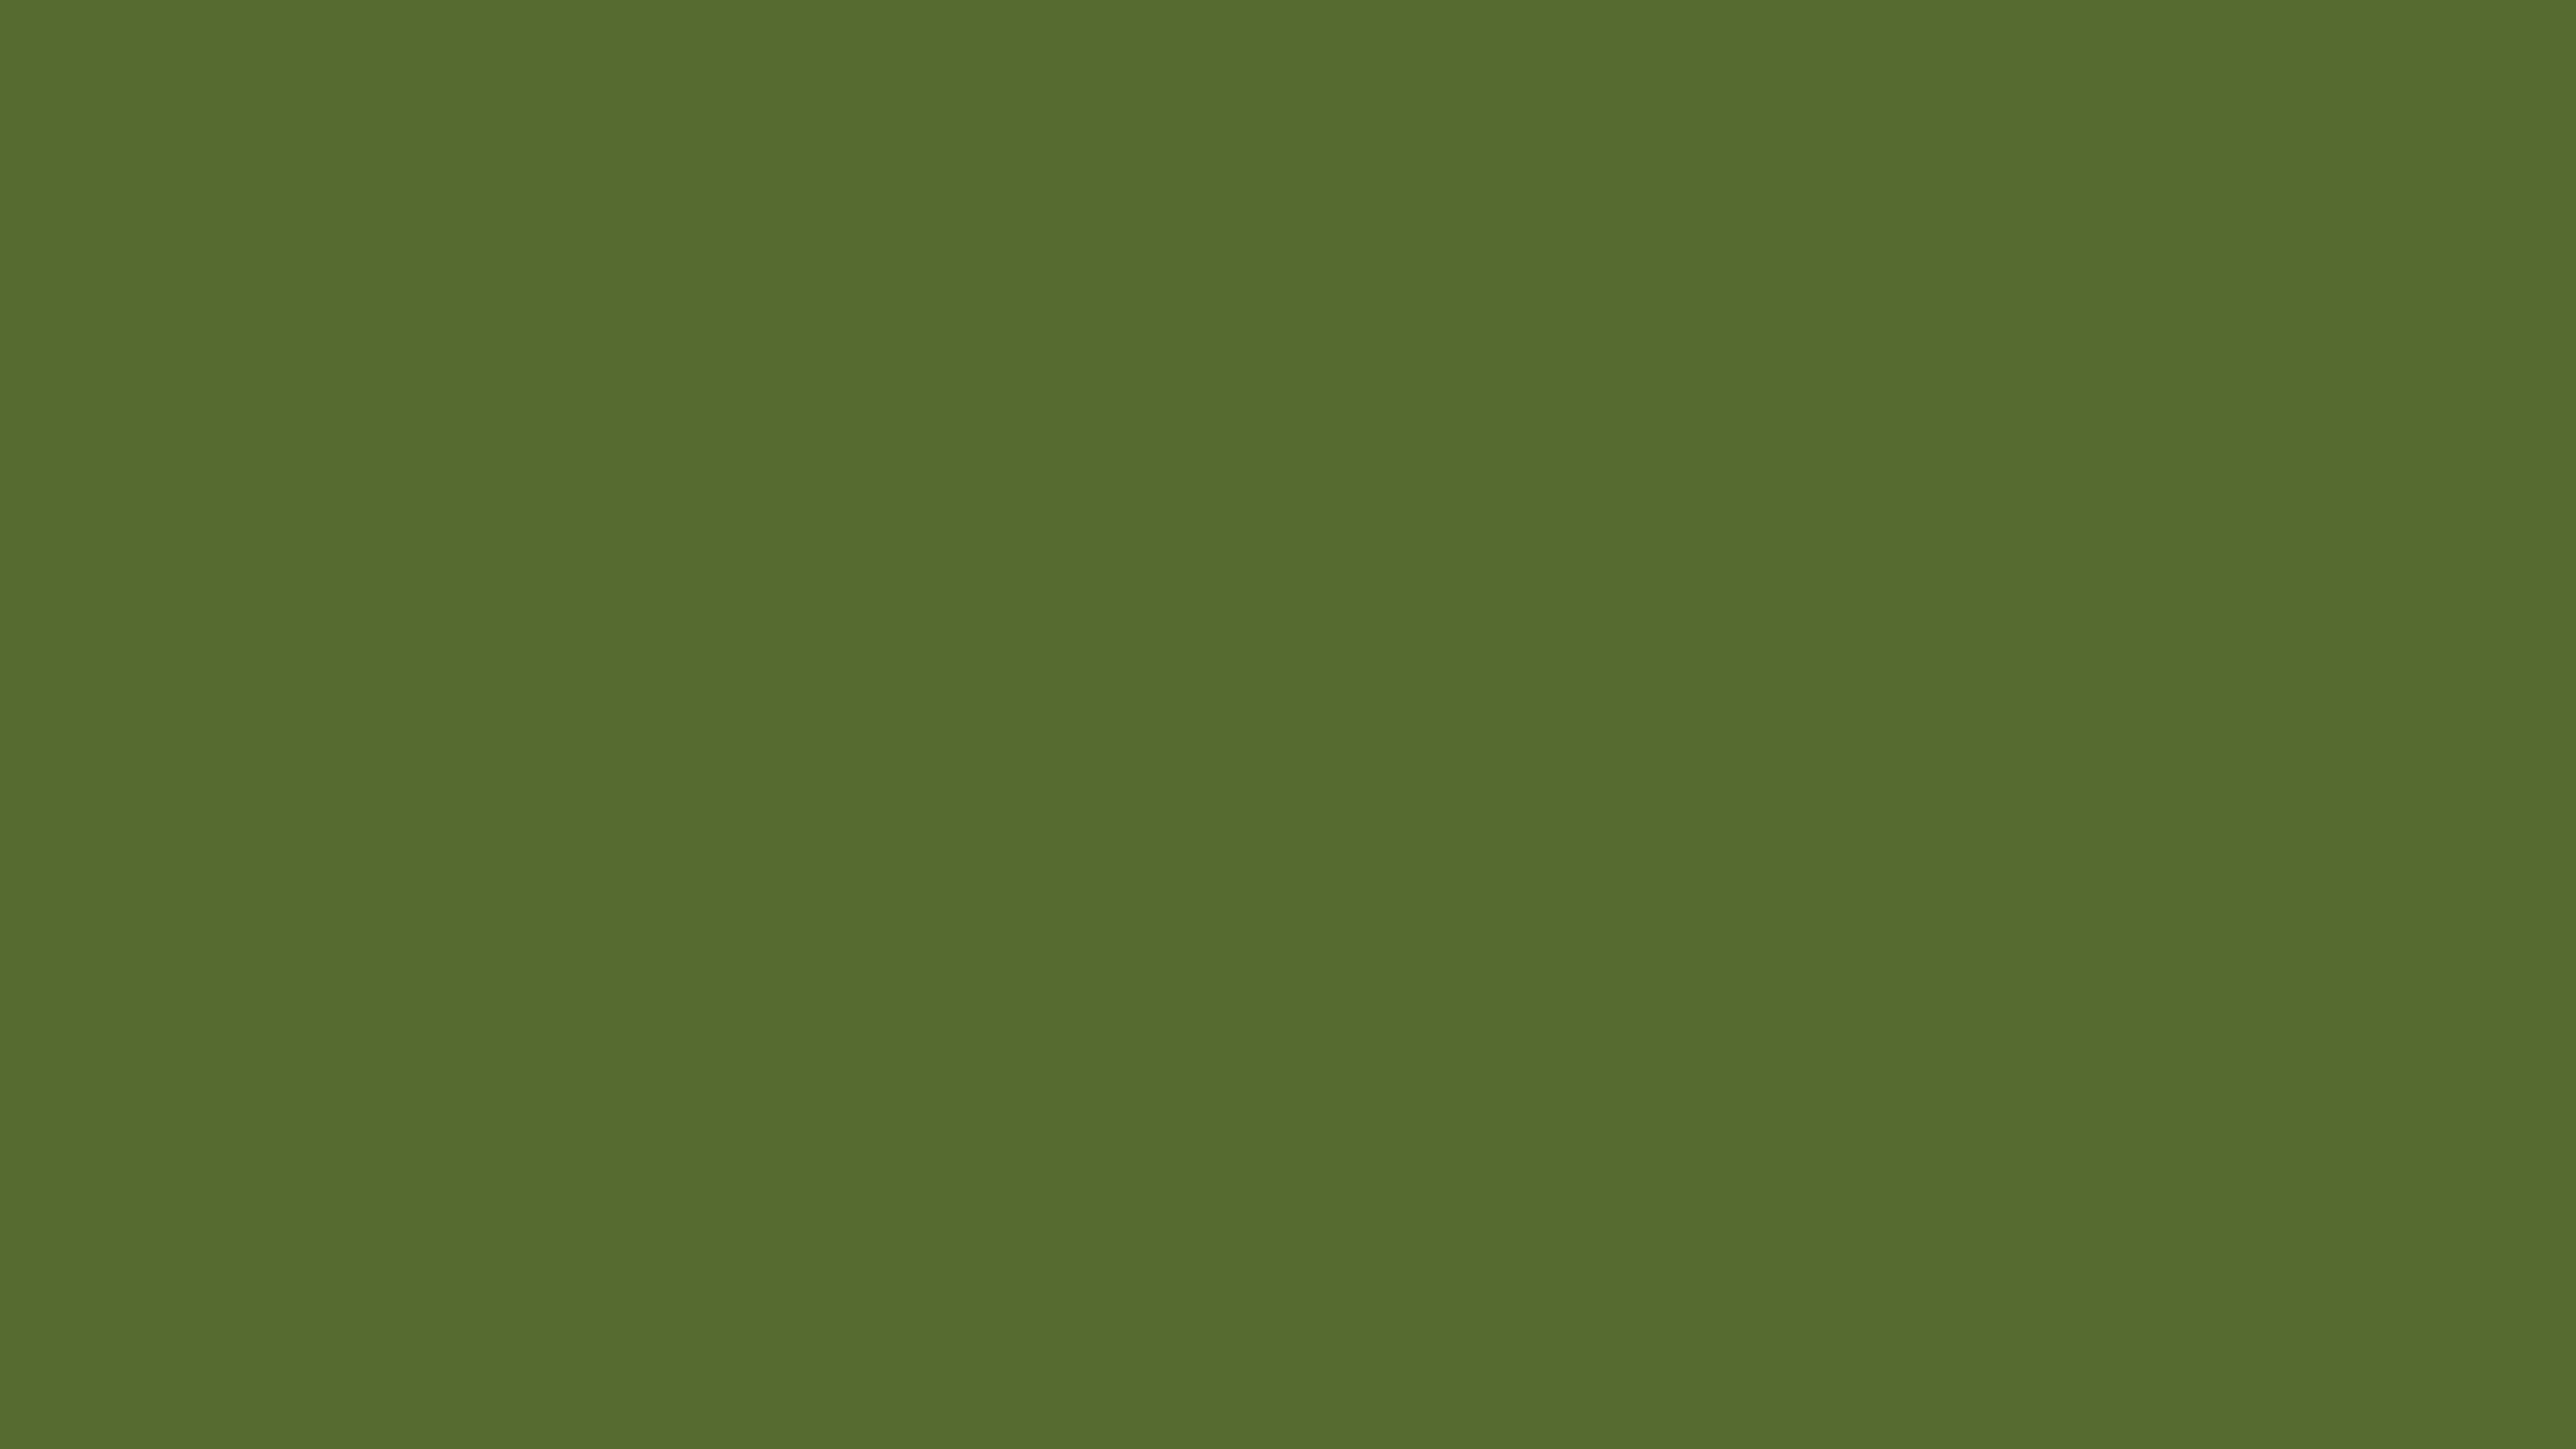 3840x2160 Dark Olive Green Solid Color Background